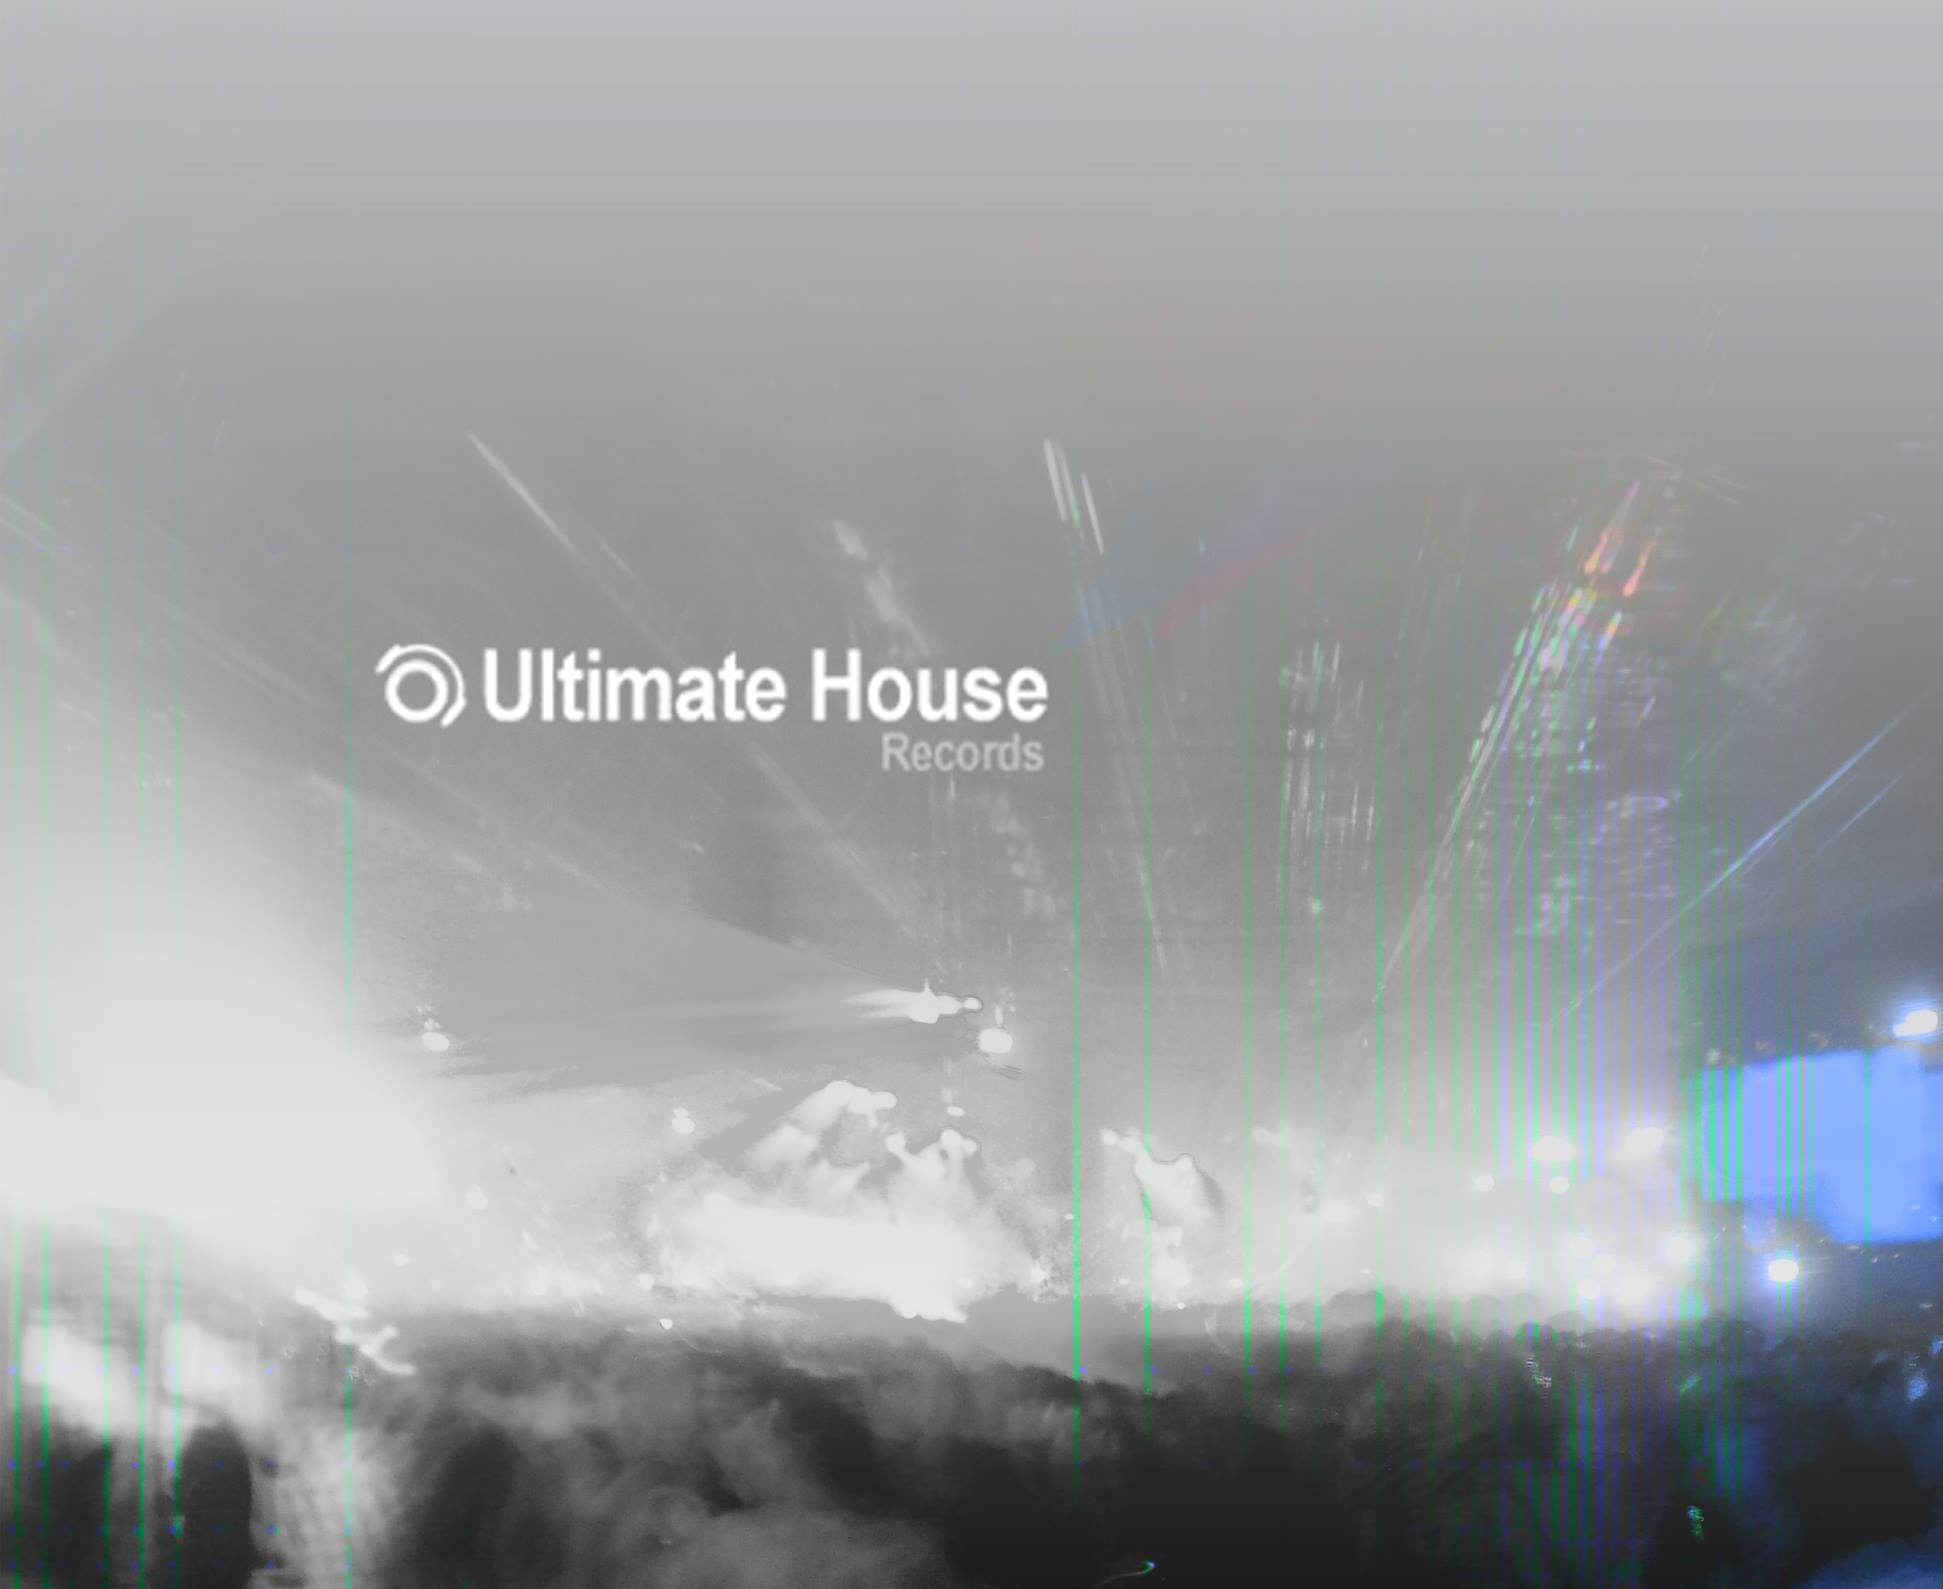 https://www.ultimate-house-records.com/wp-content/uploads/2019/03/27500603_1858154644196324_7186906034493702669_o-e1553174827880.jpg